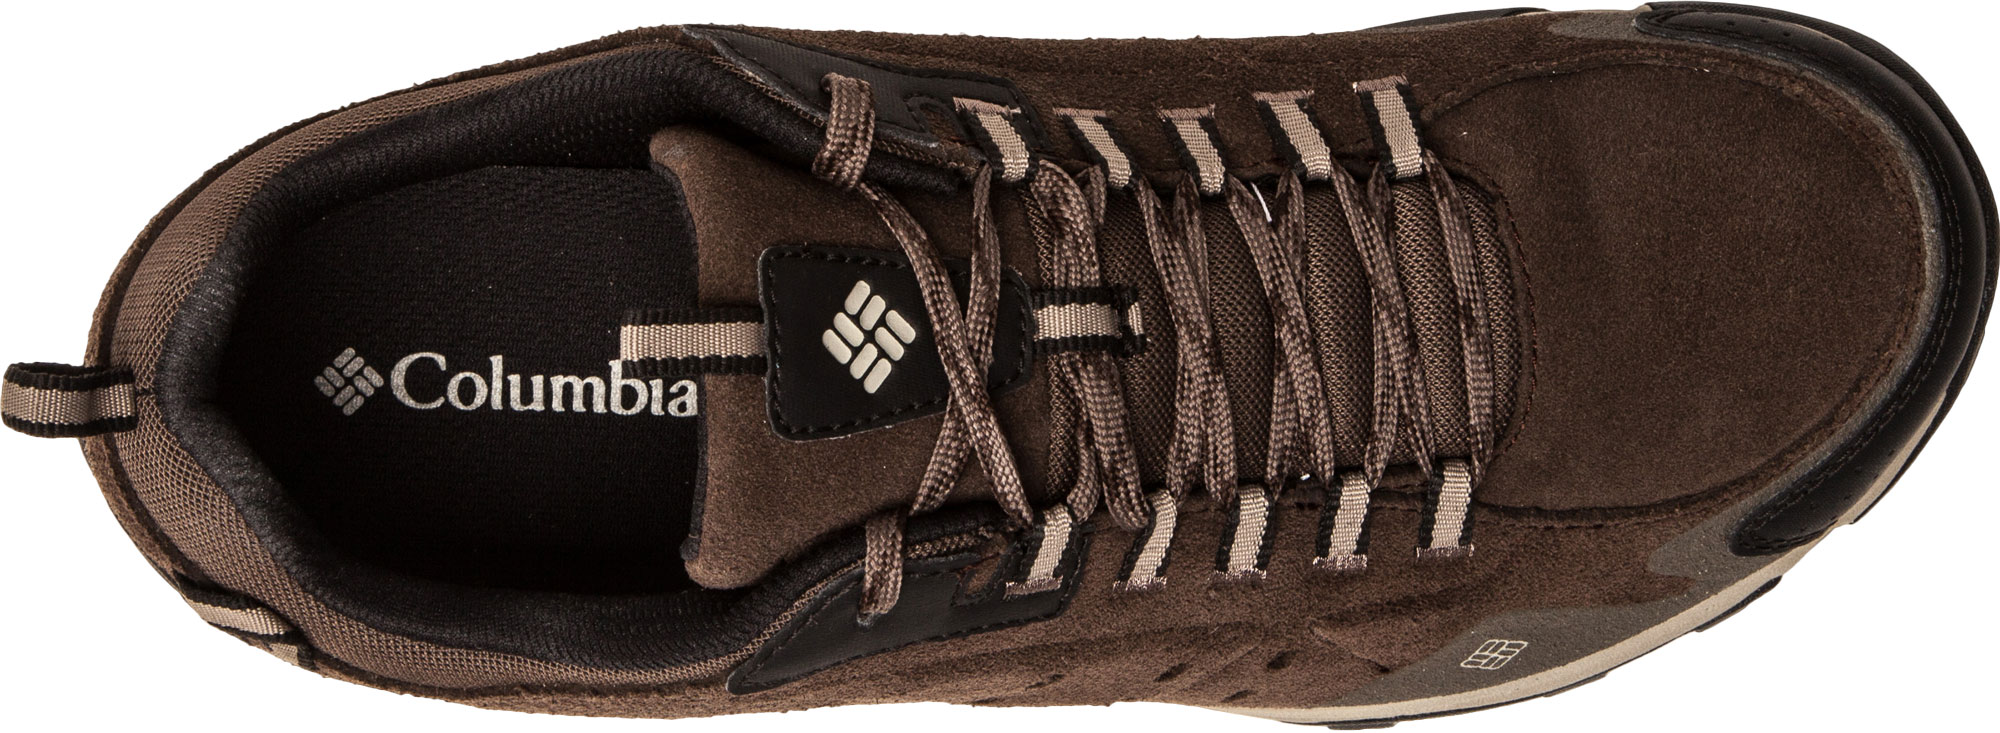 Columbia Sports Leather Shoes